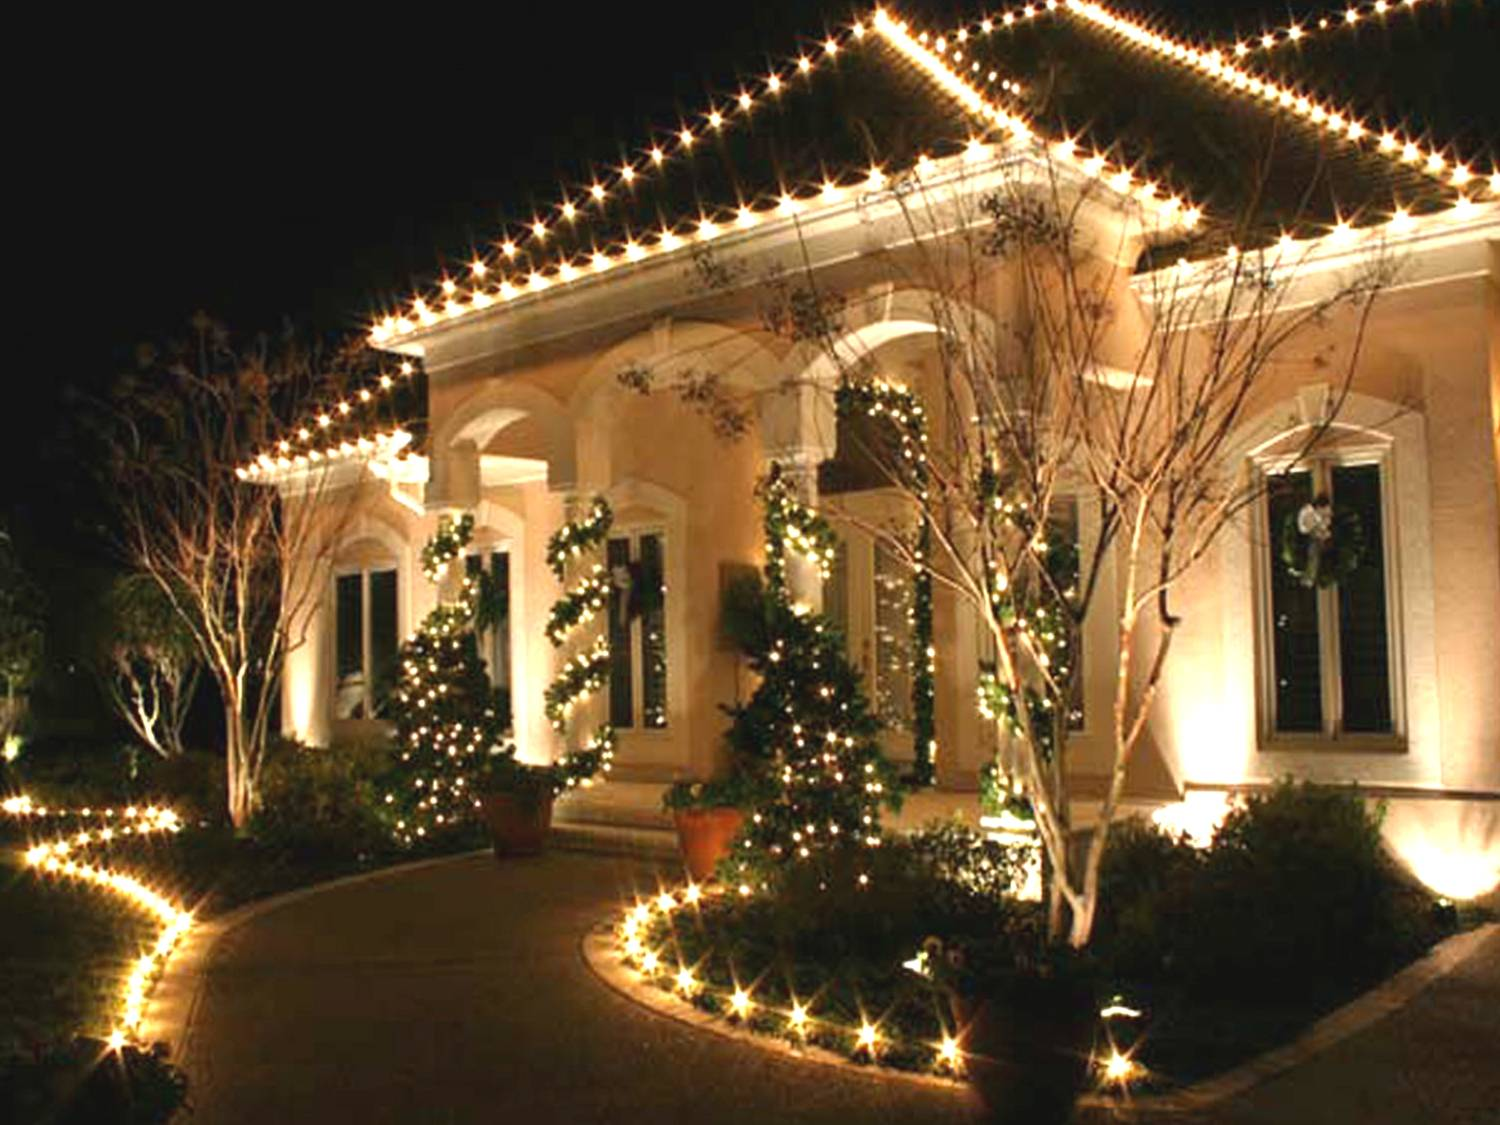 Swingle CEO: July Increase in Christmas Lighting and ...